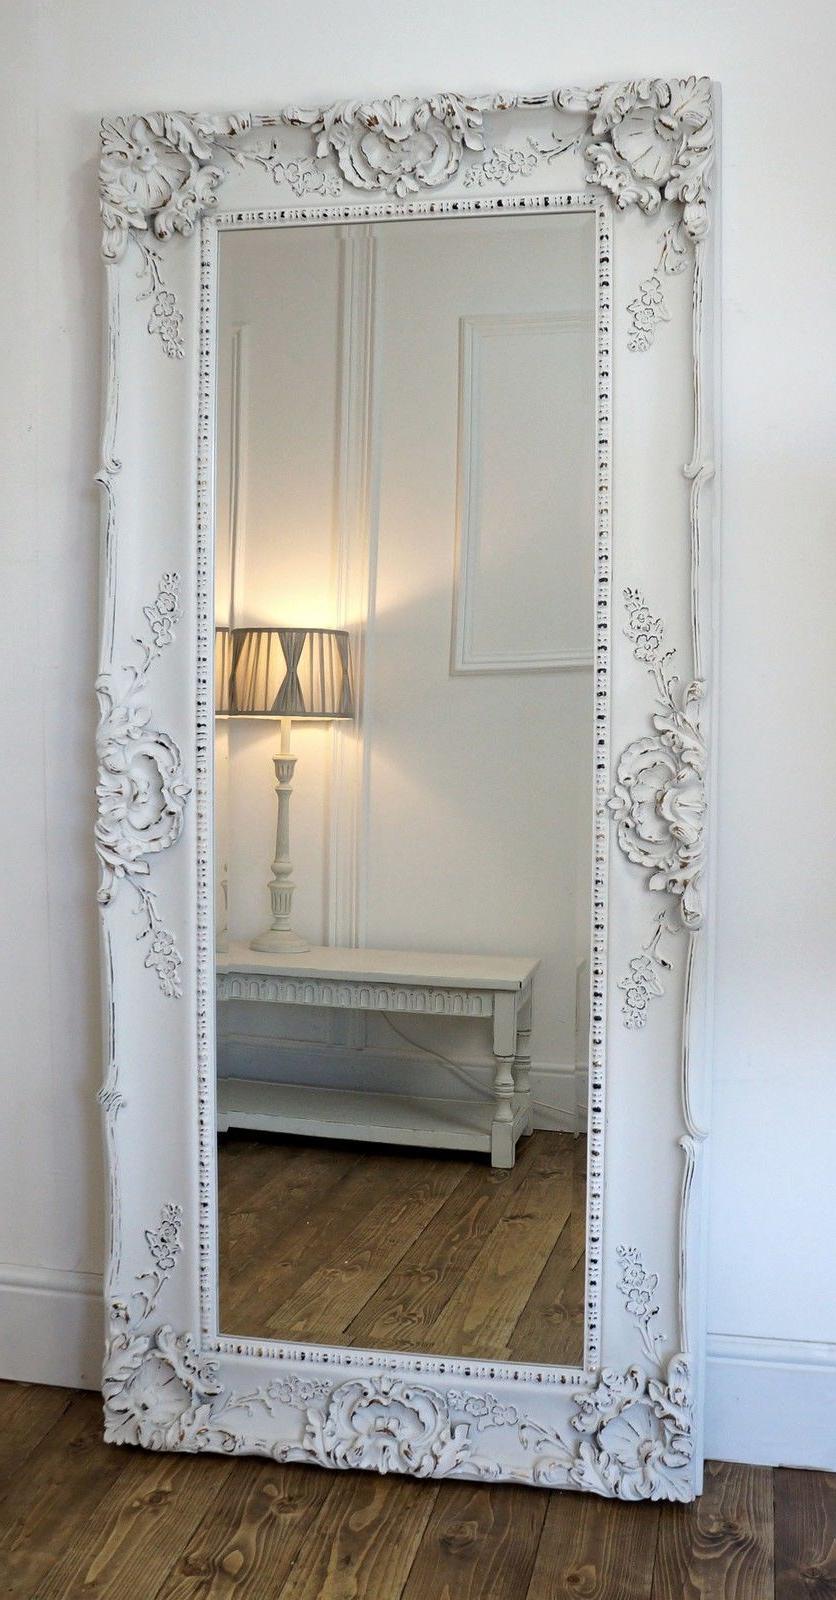 Latest White Long Wall Mirrors Regarding Wunderbar White Wall Mirrors Large Vanities Magnifying Cust Depot (Gallery 16 of 20)